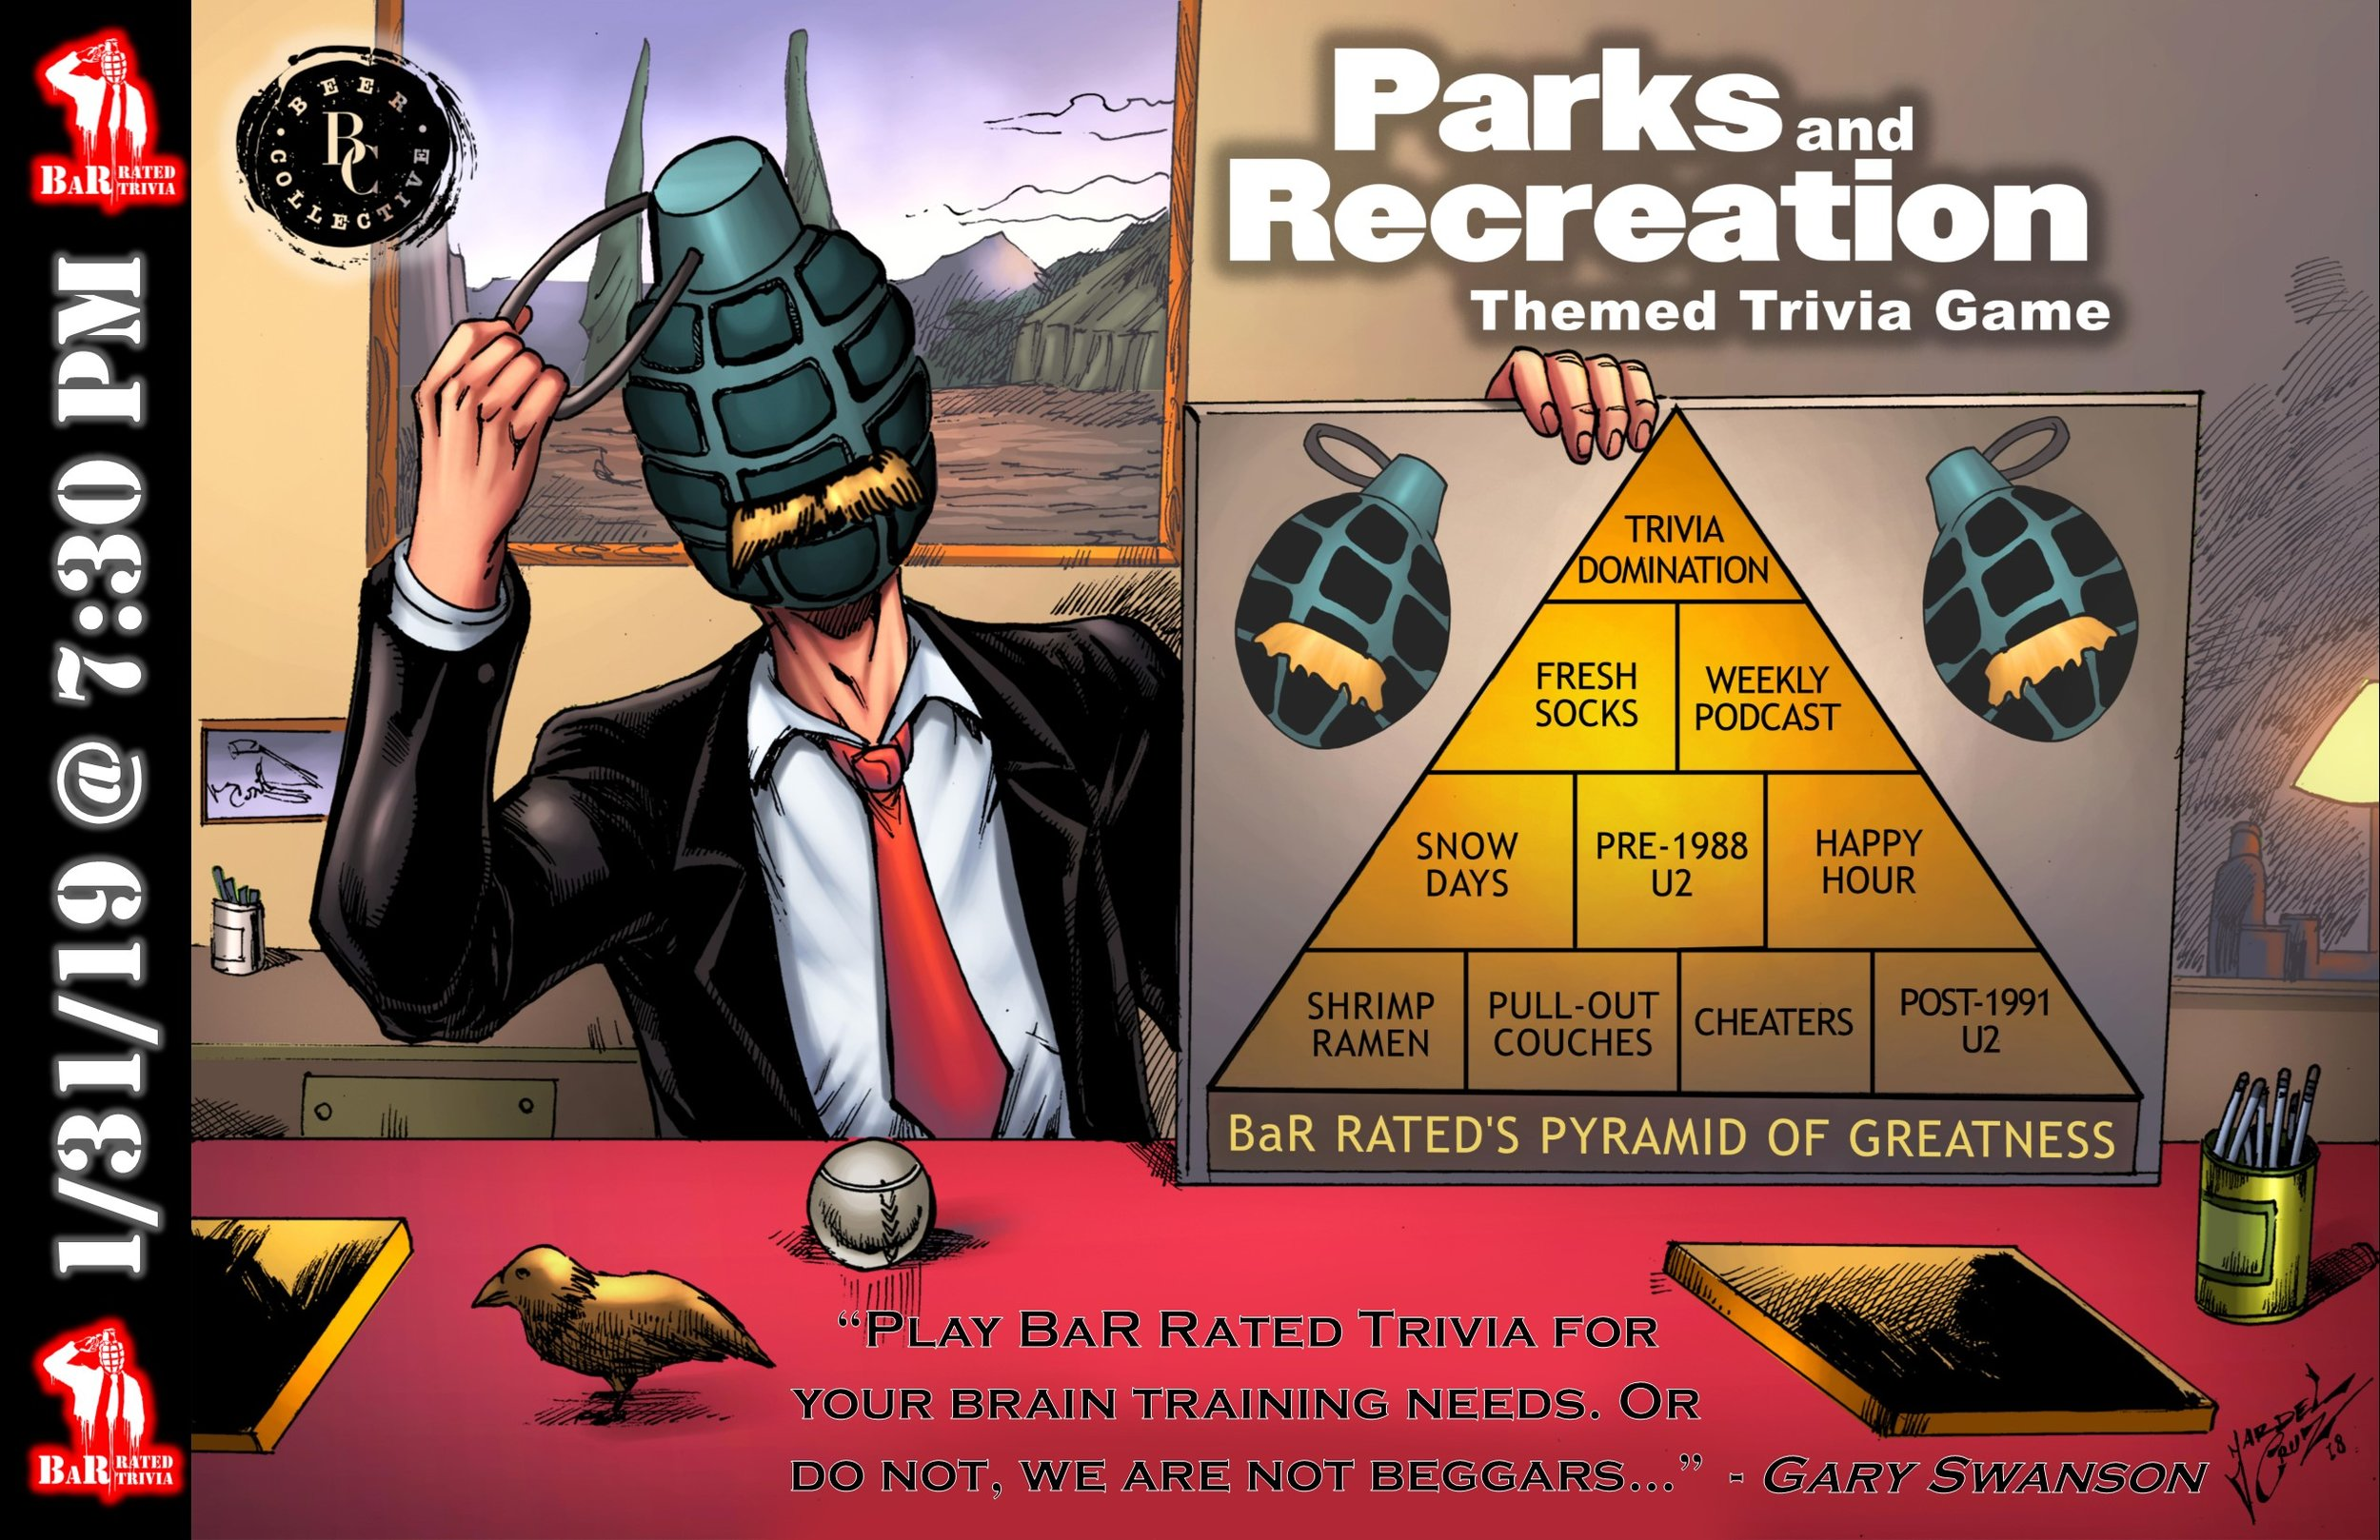 PARKS & REC Themed Game - 1-31-19 - The Beer Collective.jpg